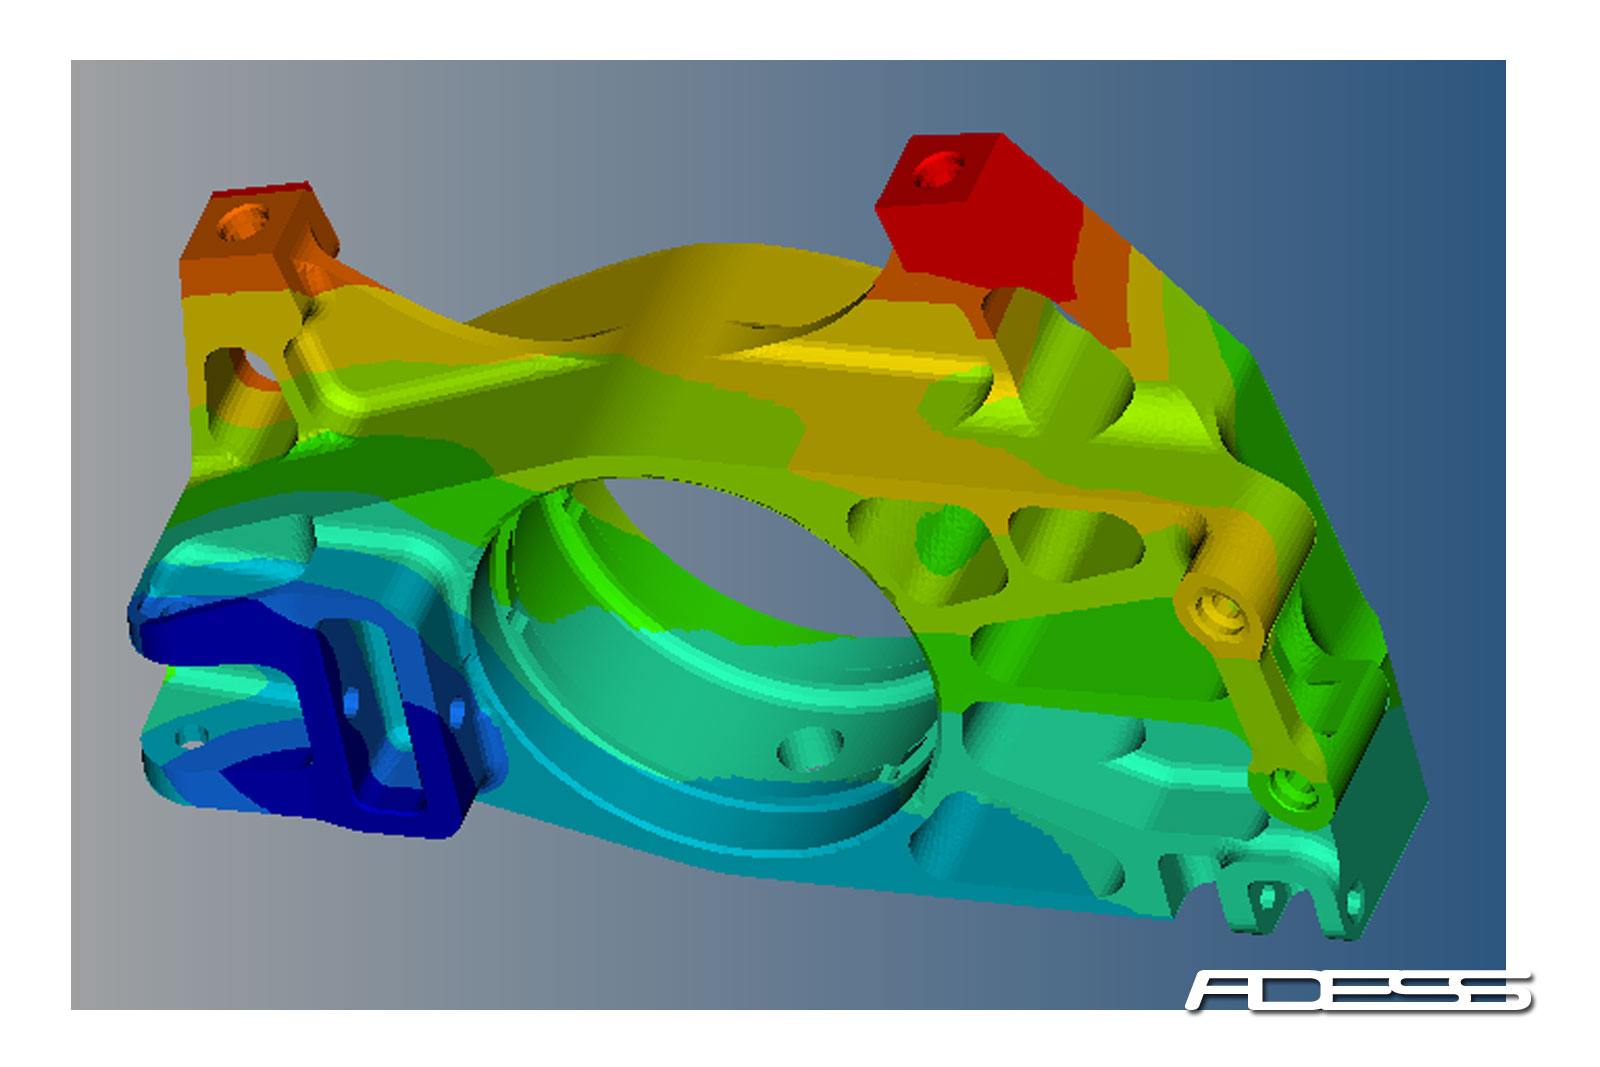 FEA Upright stress analysis